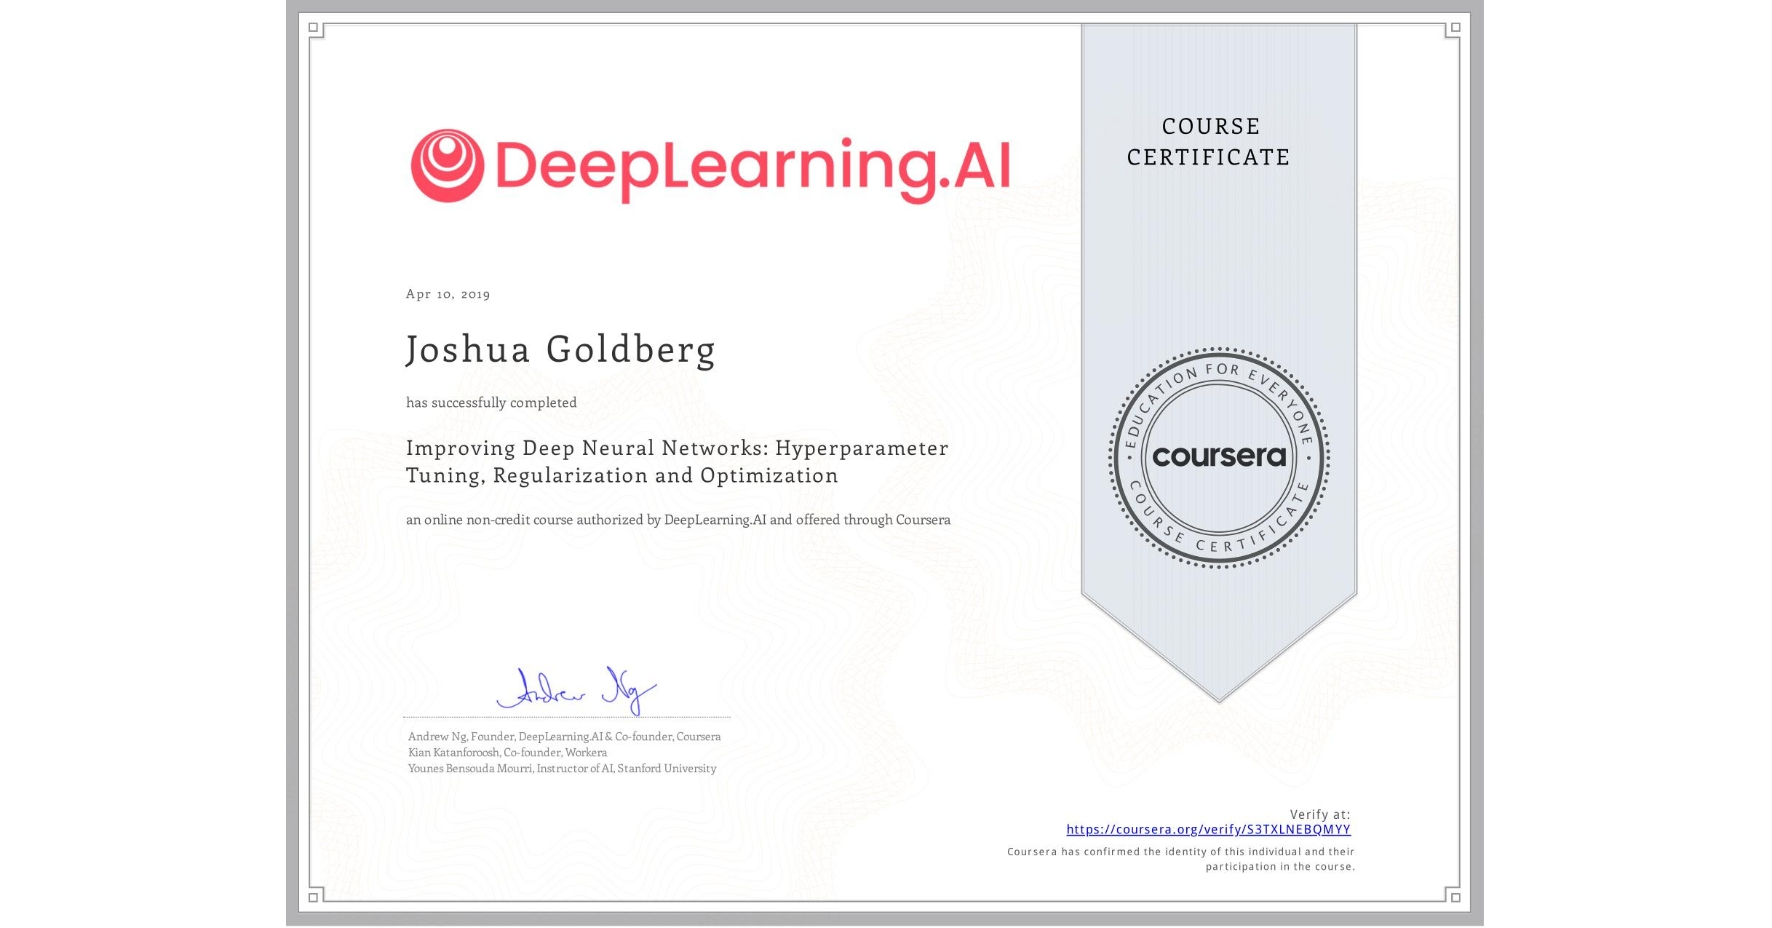 View certificate for Joshua Goldberg, Improving Deep Neural Networks: Hyperparameter Tuning, Regularization and Optimization, an online non-credit course authorized by DeepLearning.AI and offered through Coursera